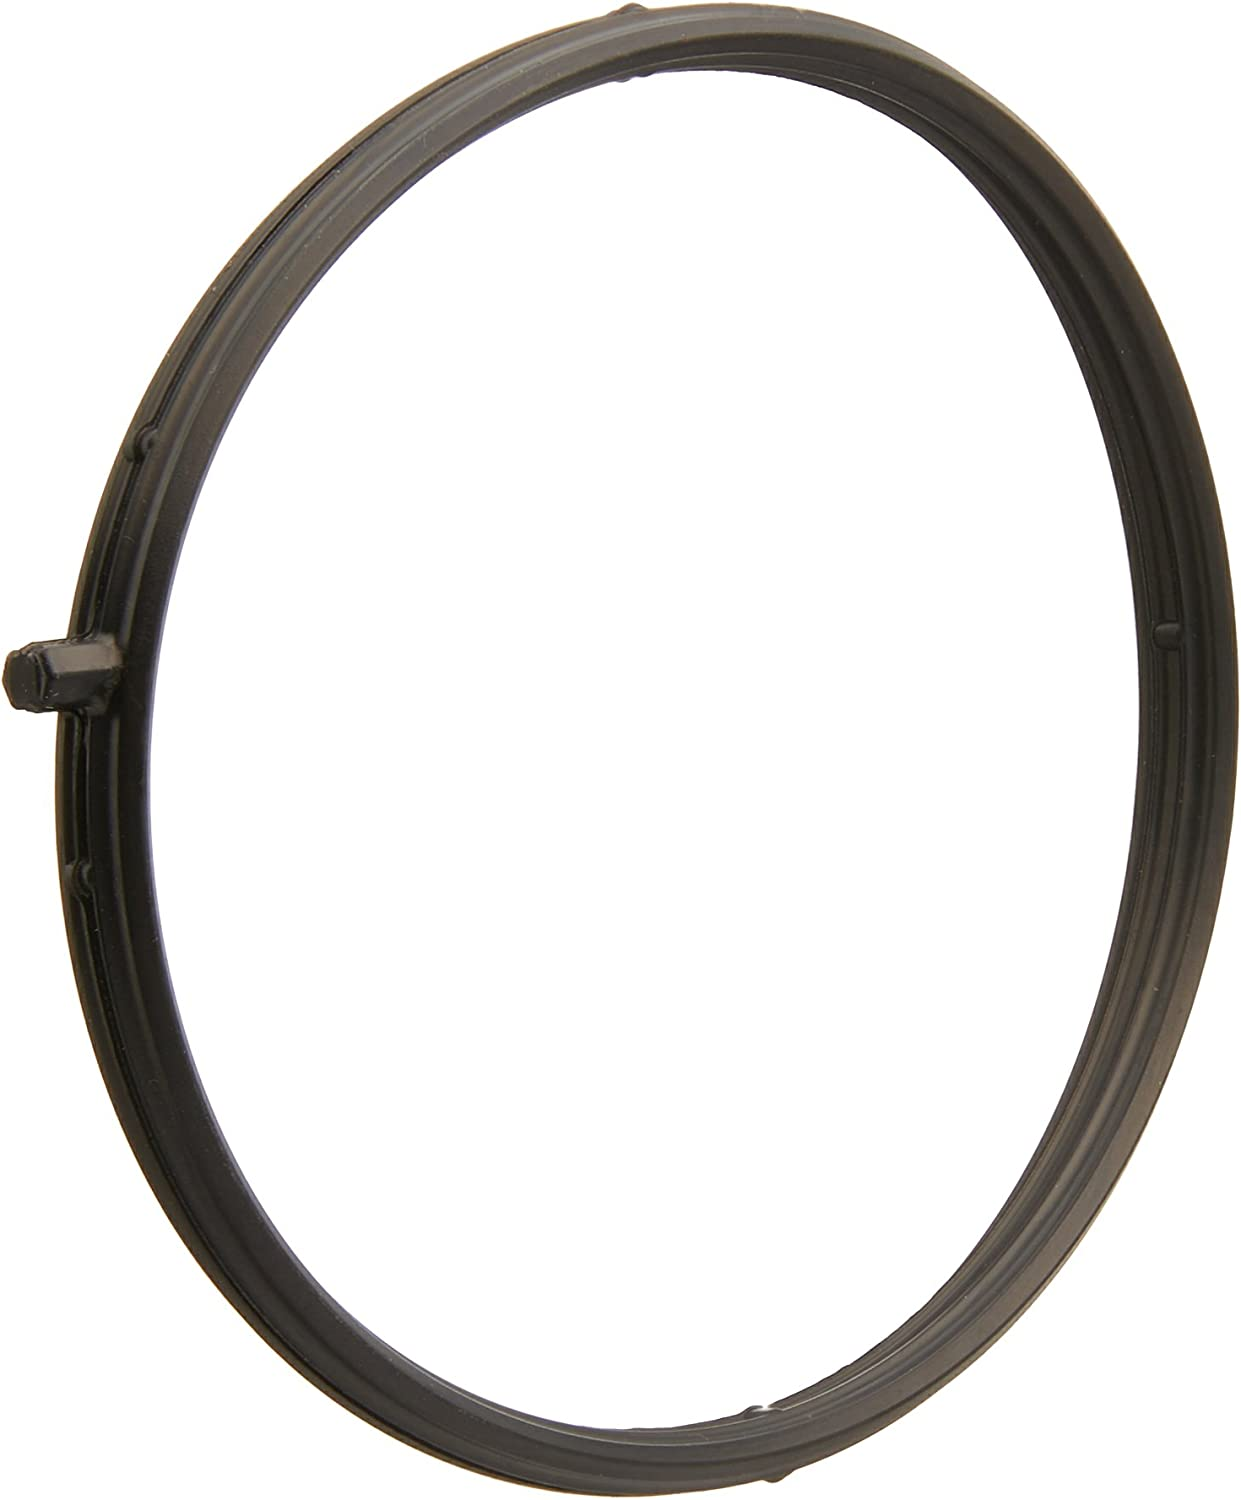 Toyota 22271-0P010 Fuel Injection Throttle Body Mounting Gasket